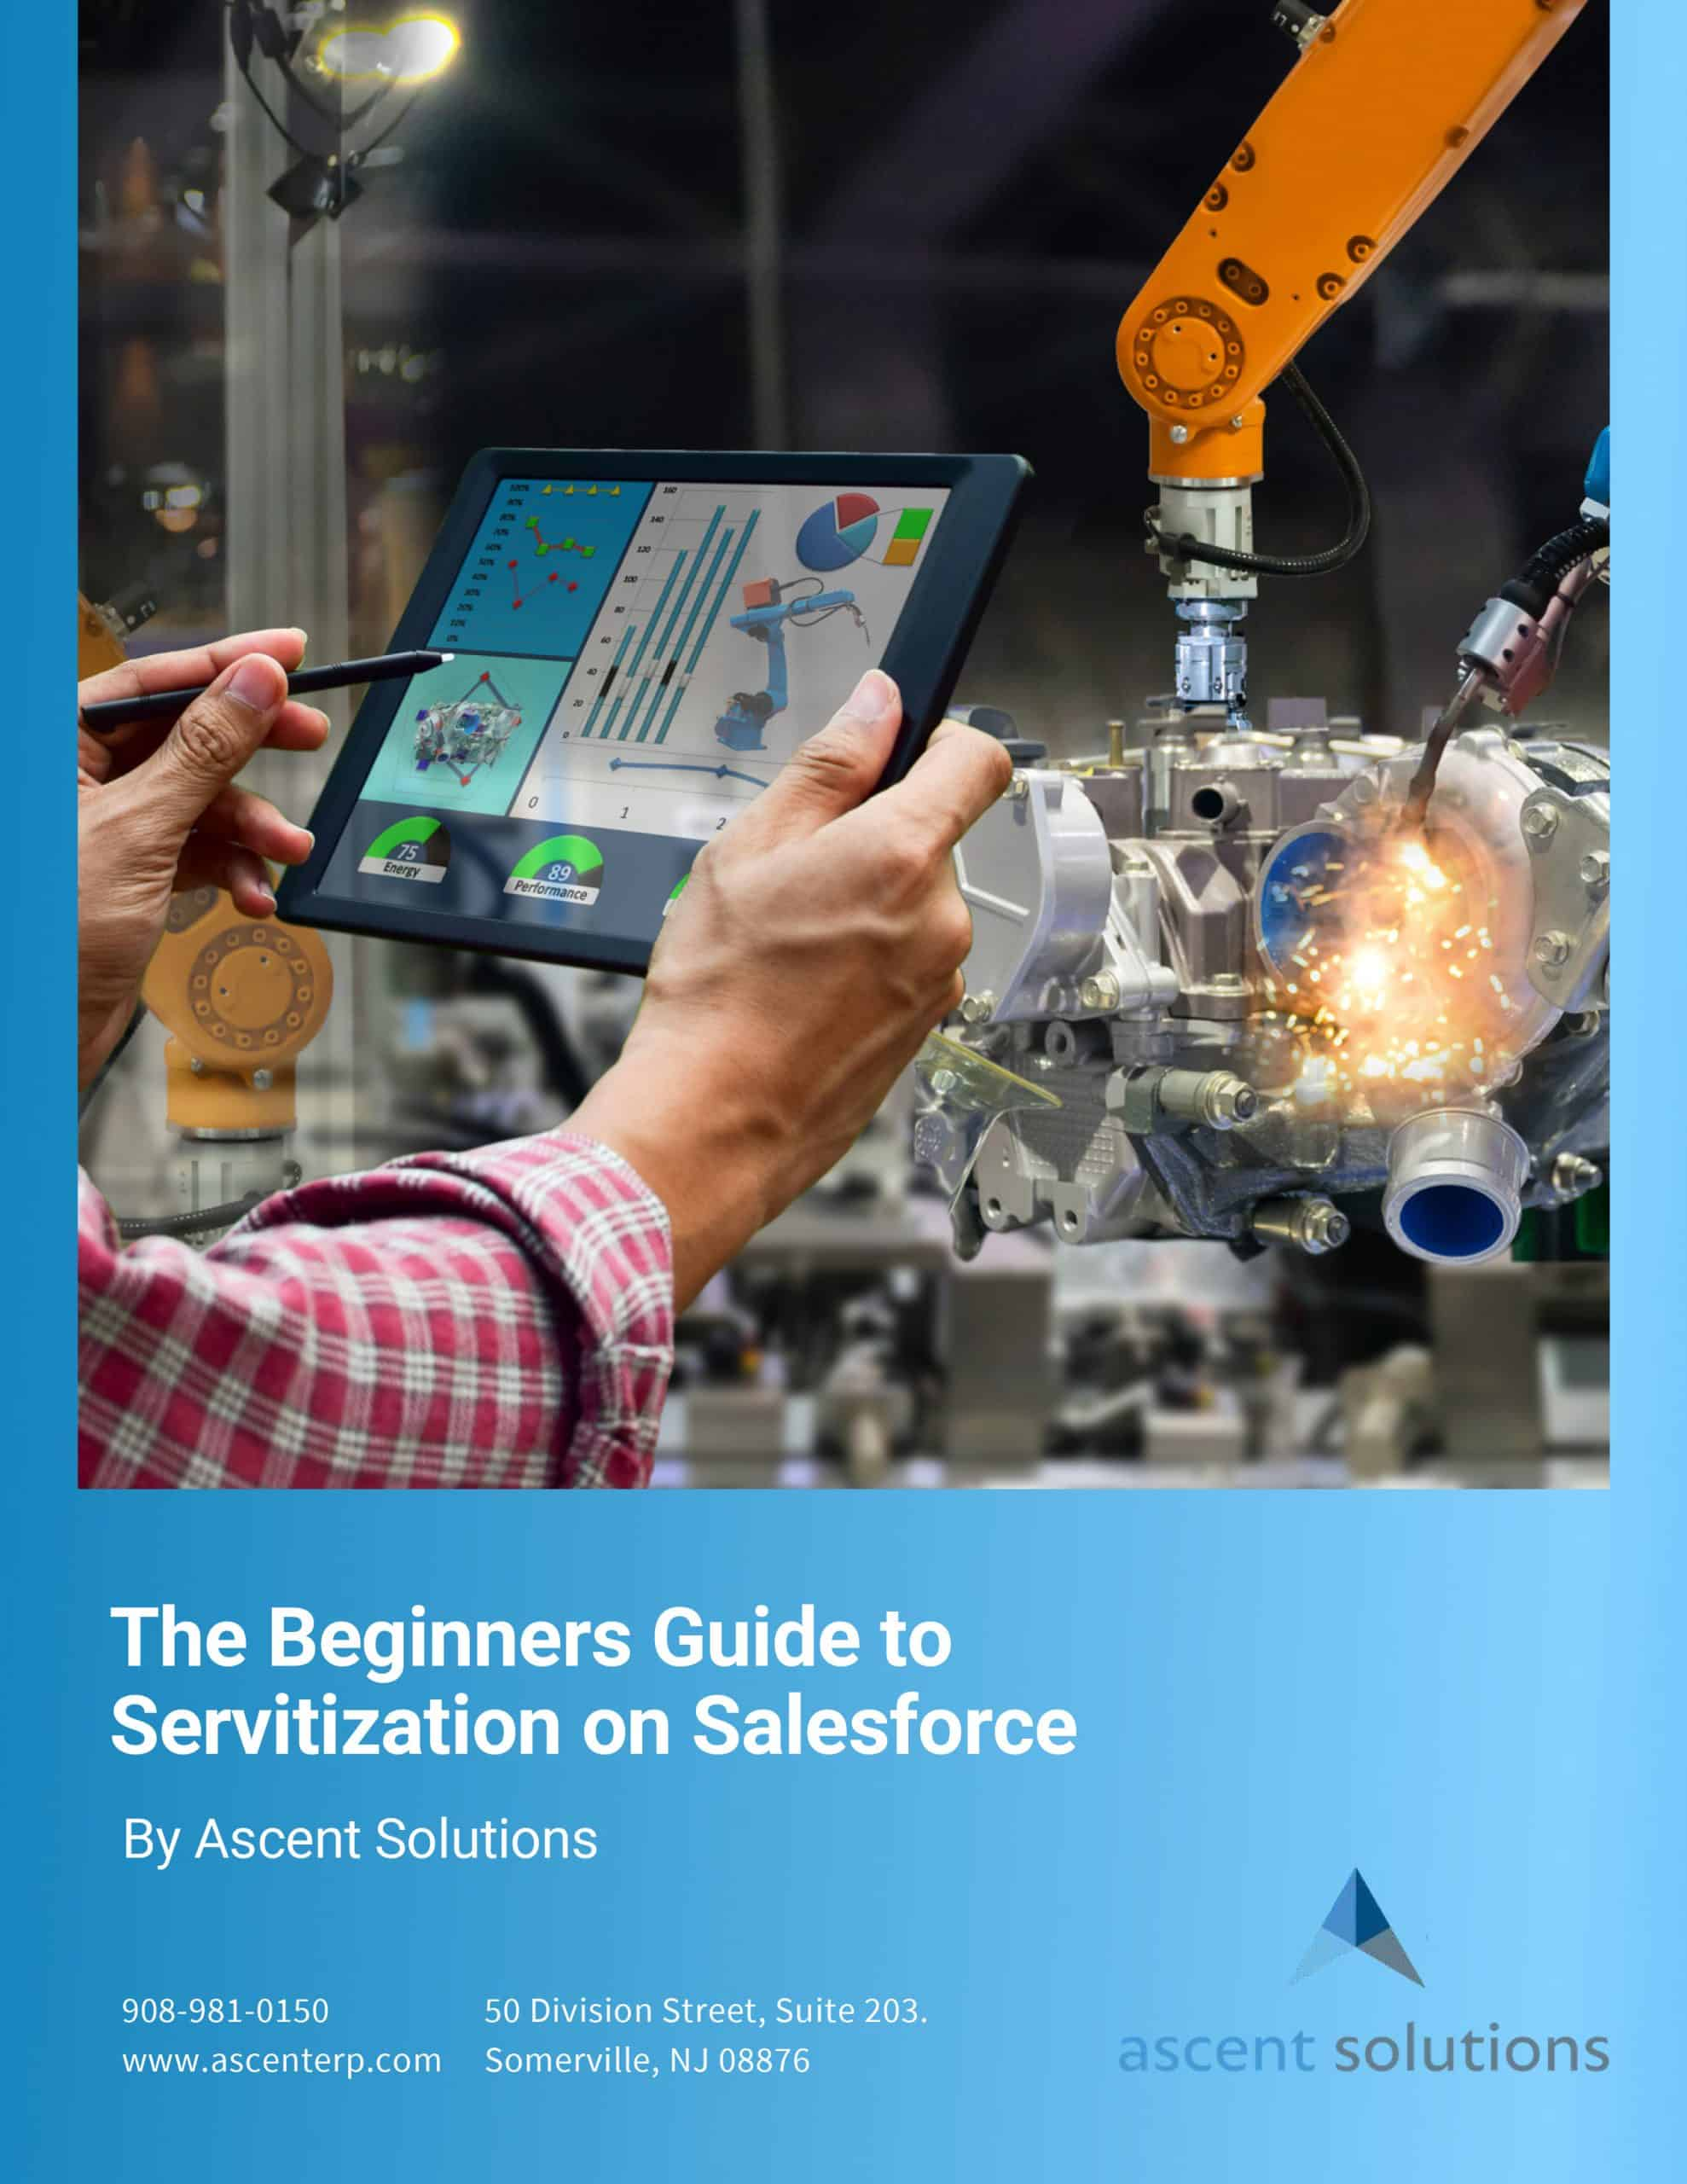 The Beginners Guide to Servitization